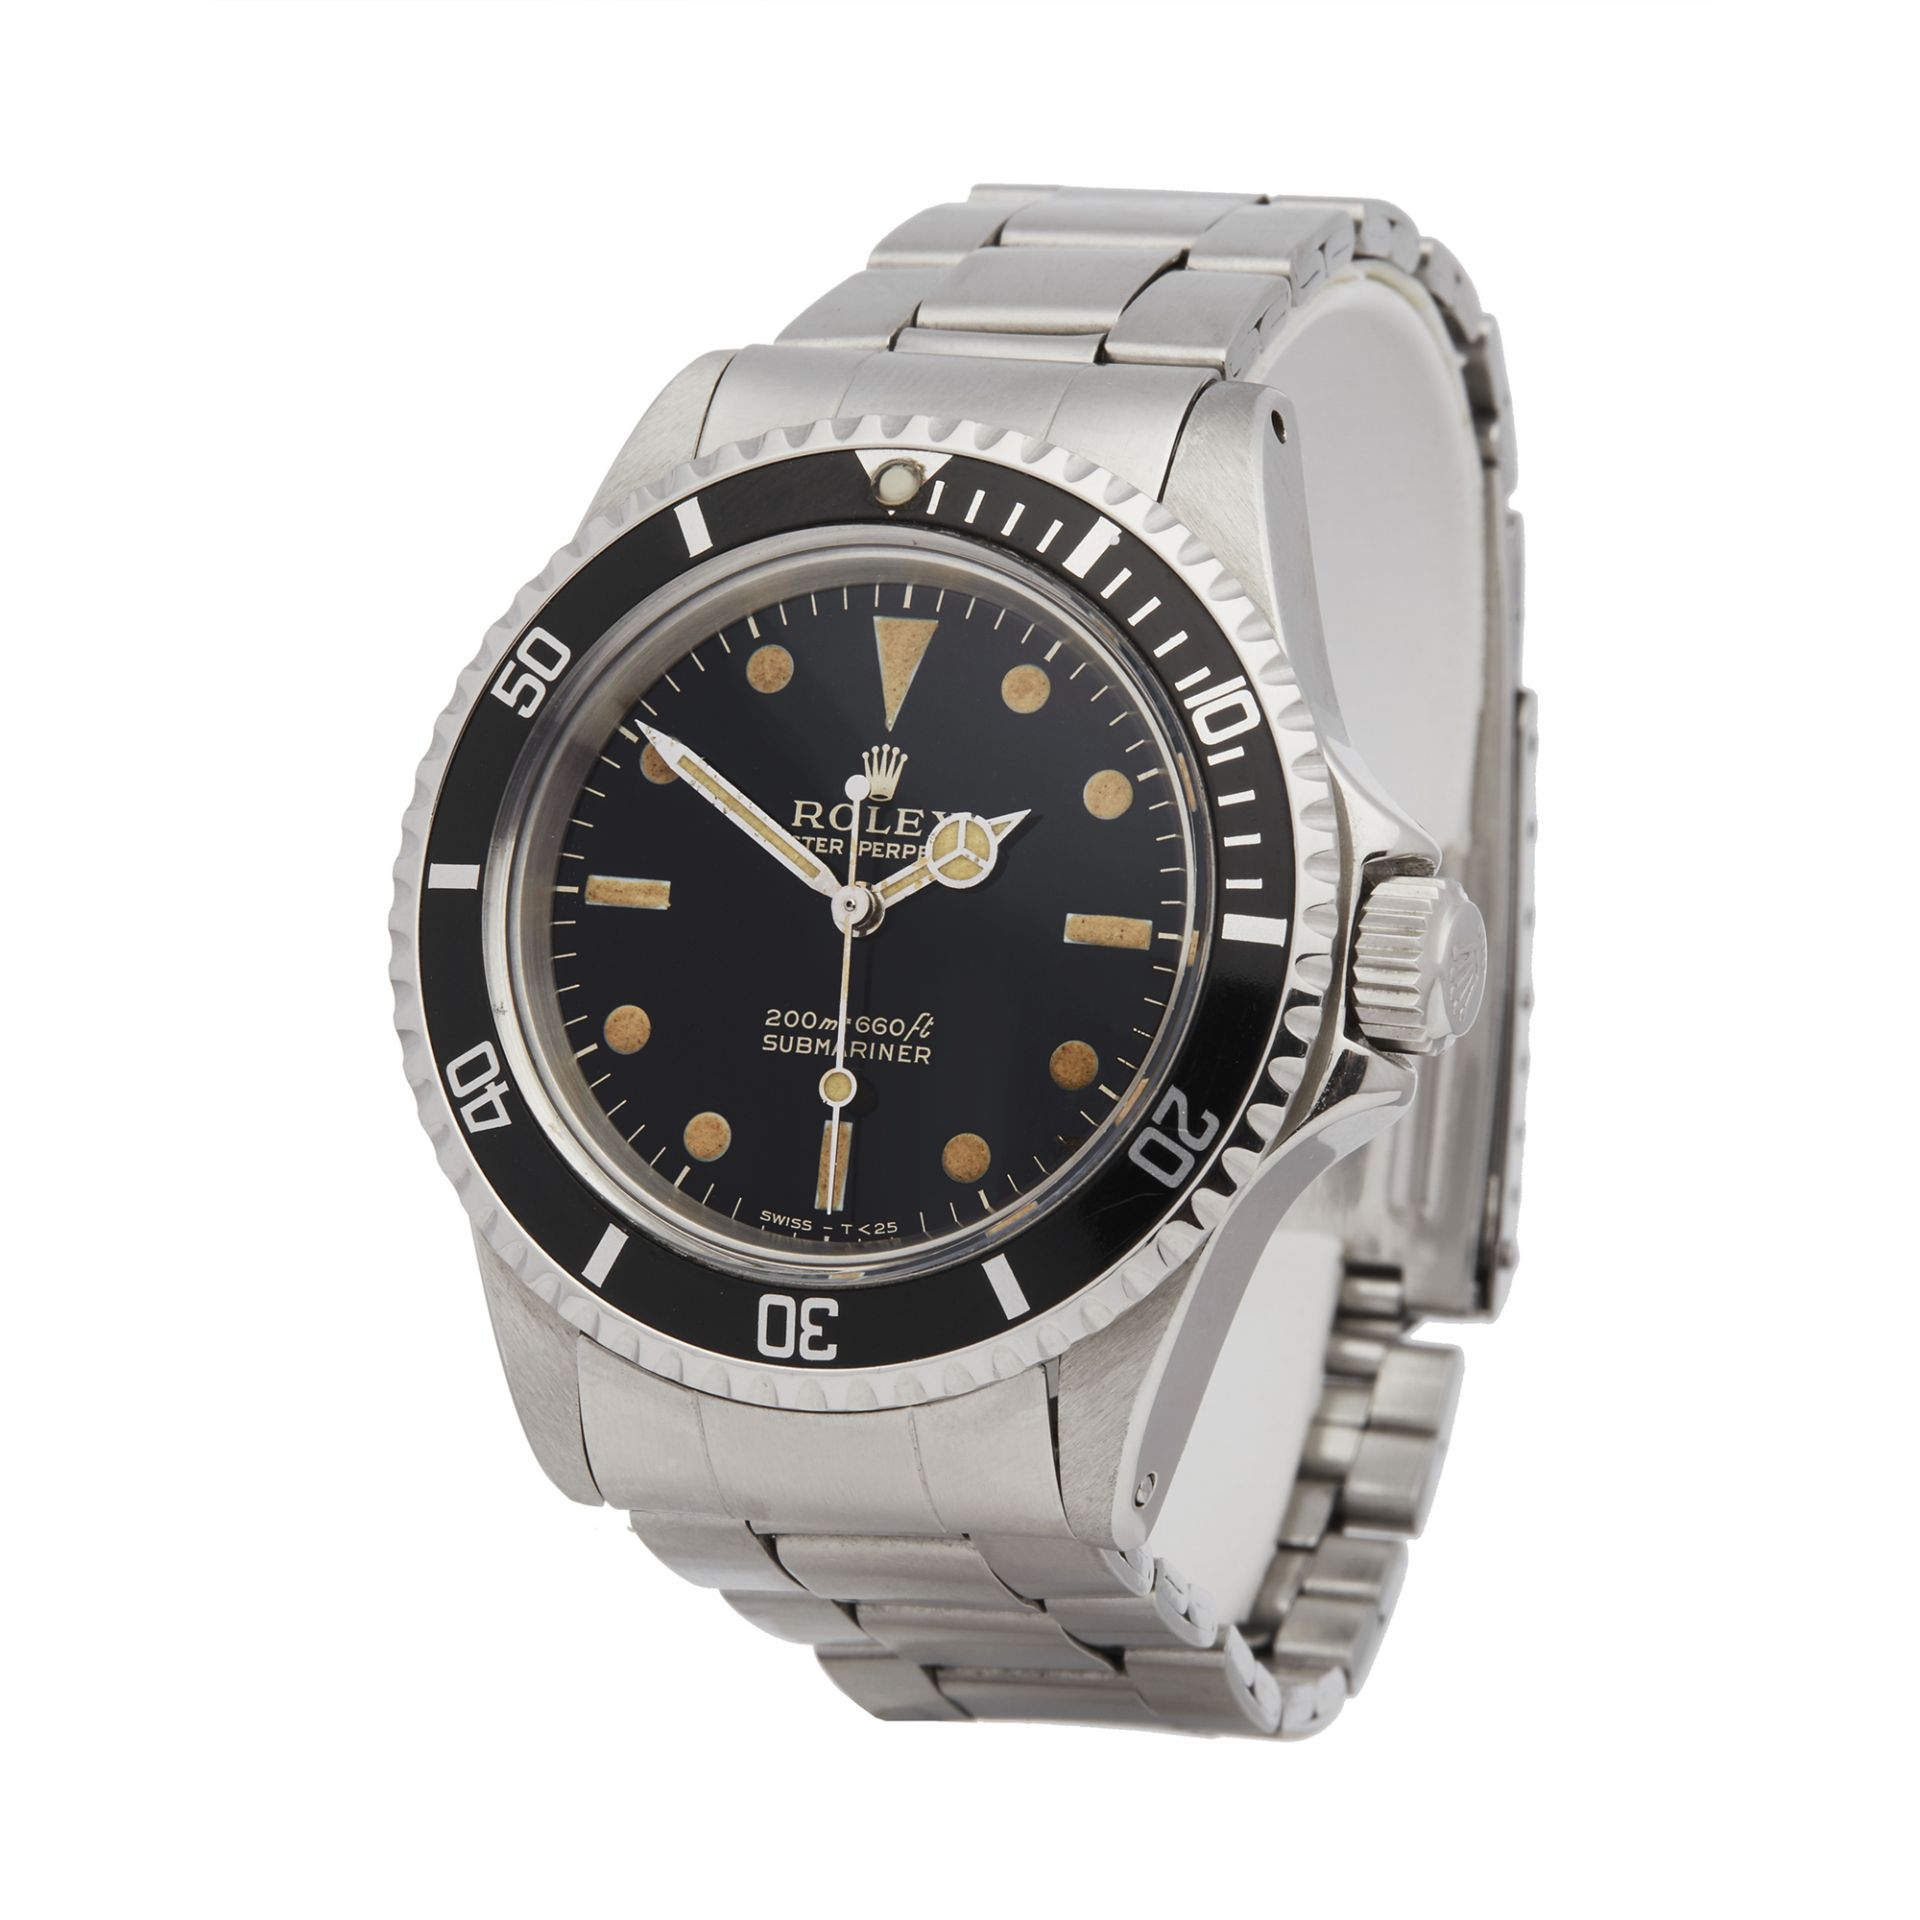 Lot 6 - 1967 Submariner Non Date Gilt Gloss Stainless Steel - 5513